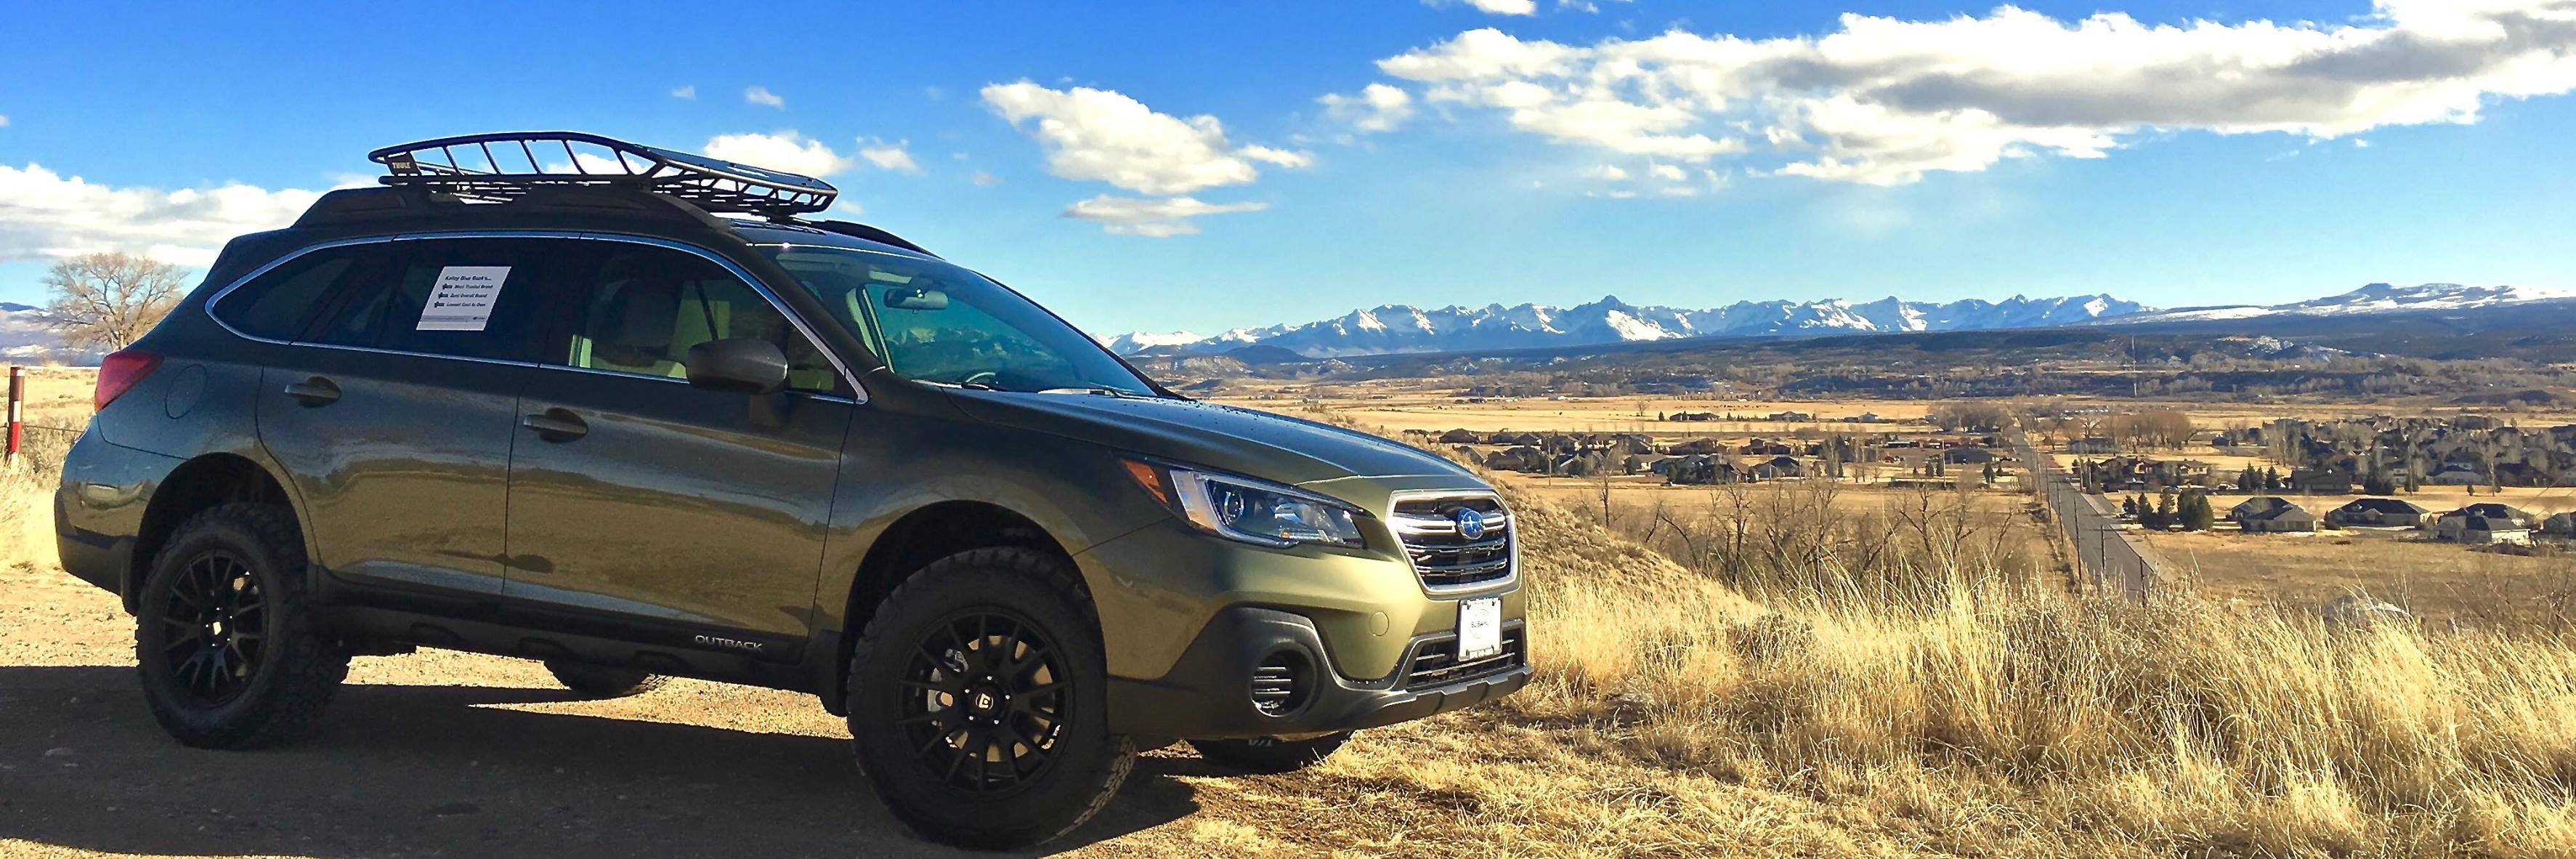 Rocky Mountain Off-Road Editions | Flower Subaru